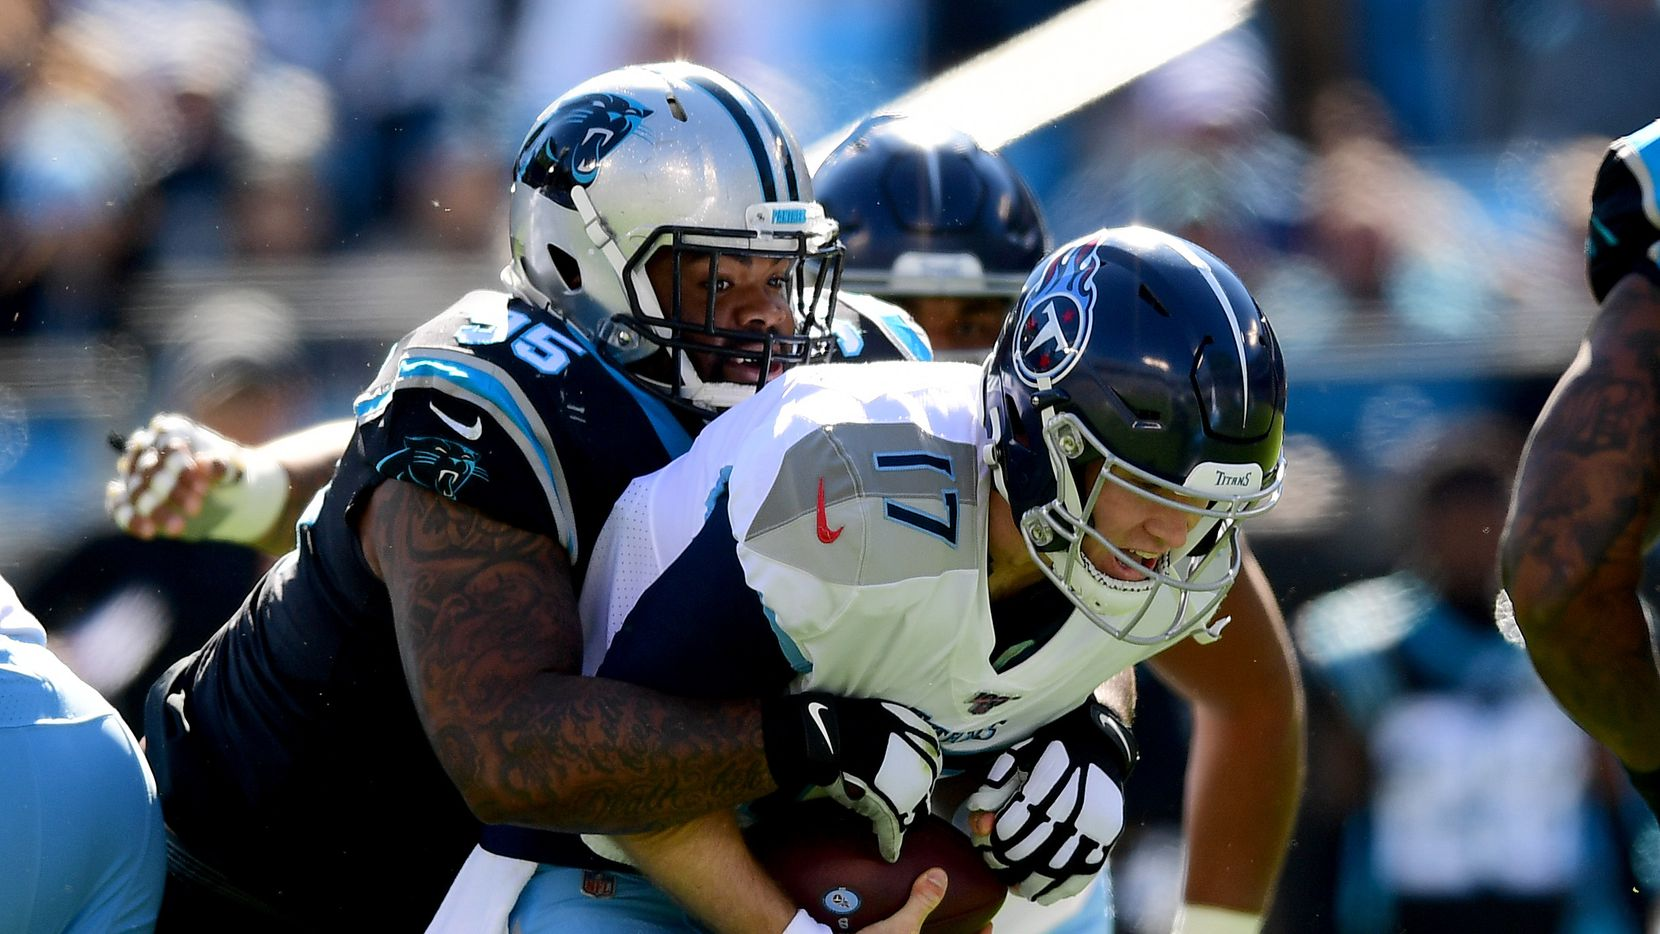 CHARLOTTE, NORTH CAROLINA - NOVEMBER 03: Dontari Poe #95 of the Carolina Panthers sacks Ryan Tannehill #17 of the Tennessee Titans in the first quarter during their game at Bank of America Stadium on November 03, 2019 in Charlotte, North Carolina. (Photo by Jacob Kupferman/Getty Images)